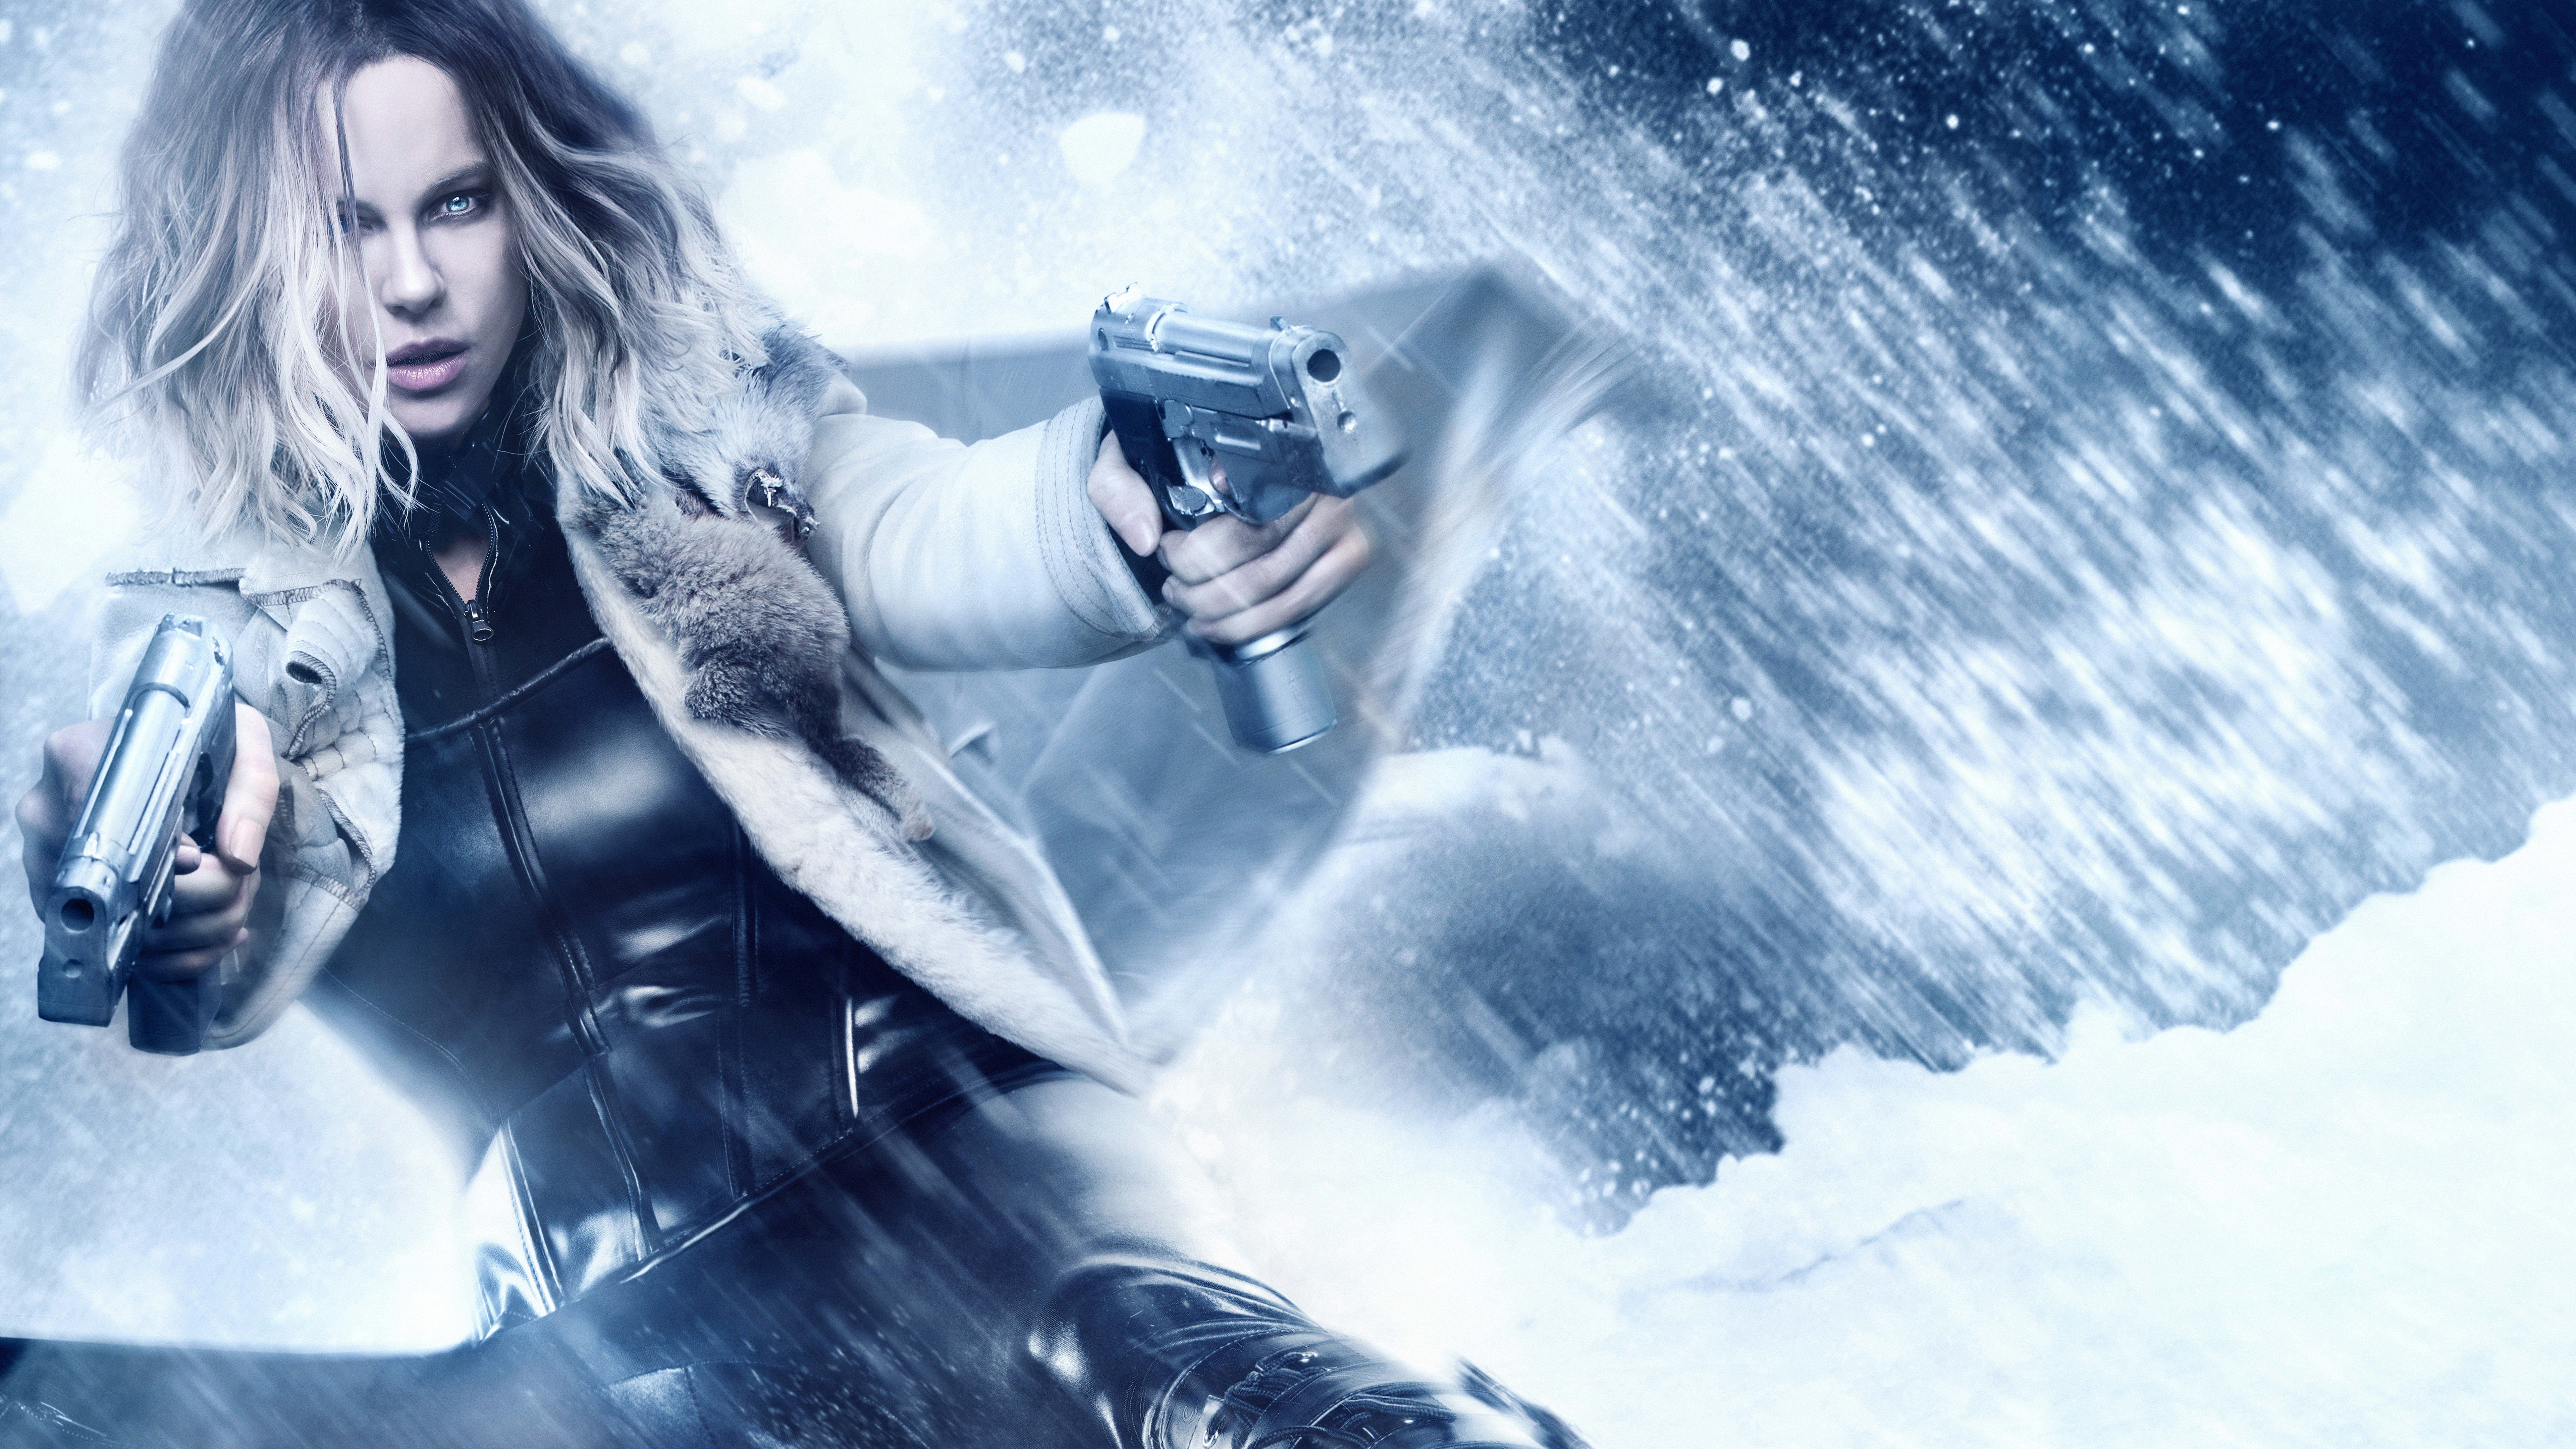 26 Selene Underworld Hd Wallpapers Background Images Wallpaper Abyss